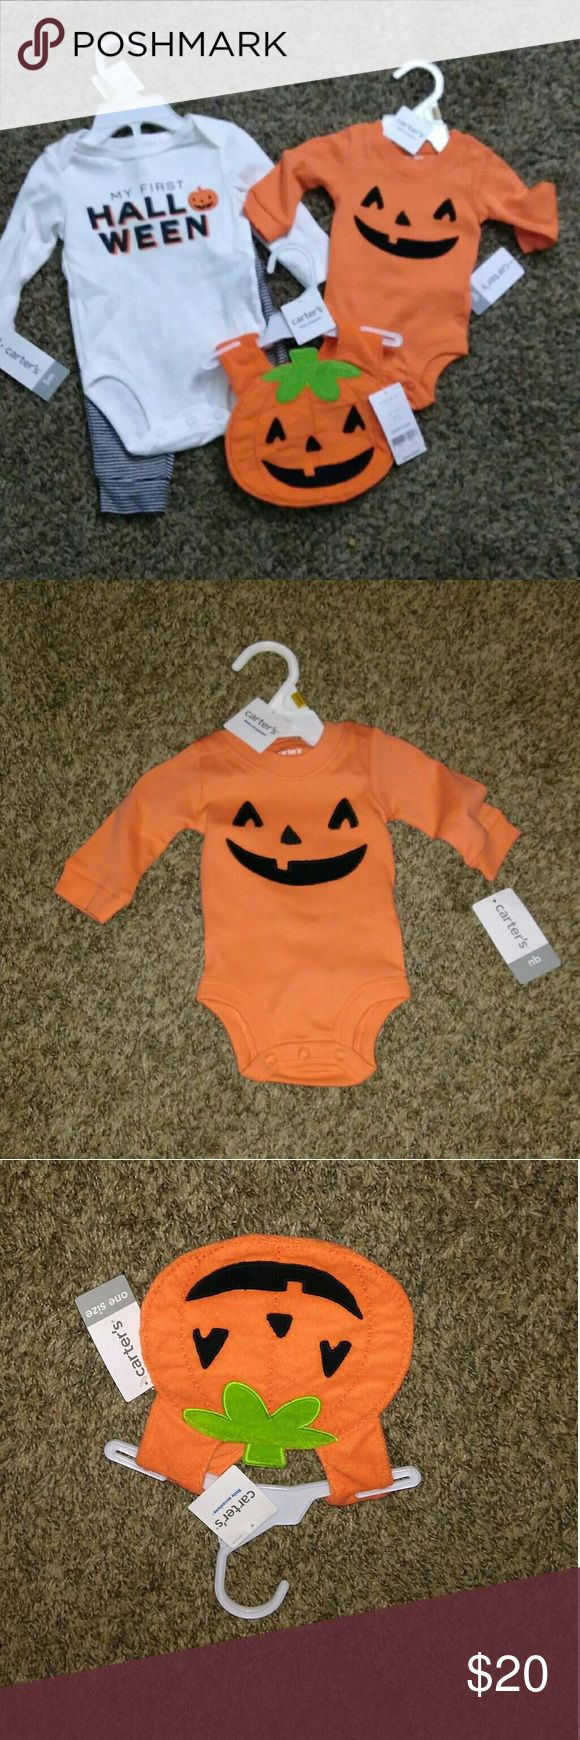 """Infants """"Carters"""" Halloween Set NWT Bib, Outfit, and long sleeve Onesie. The orange onesie is Newborn 6-9 lbs and the other outfit fits up to 3 months 9-12.5 lbs. I purchased Halloween, Thanksgiving, and Christmas sets (also for sale) as gifts but unfortunately no longer need them. Carter's Matching Sets"""